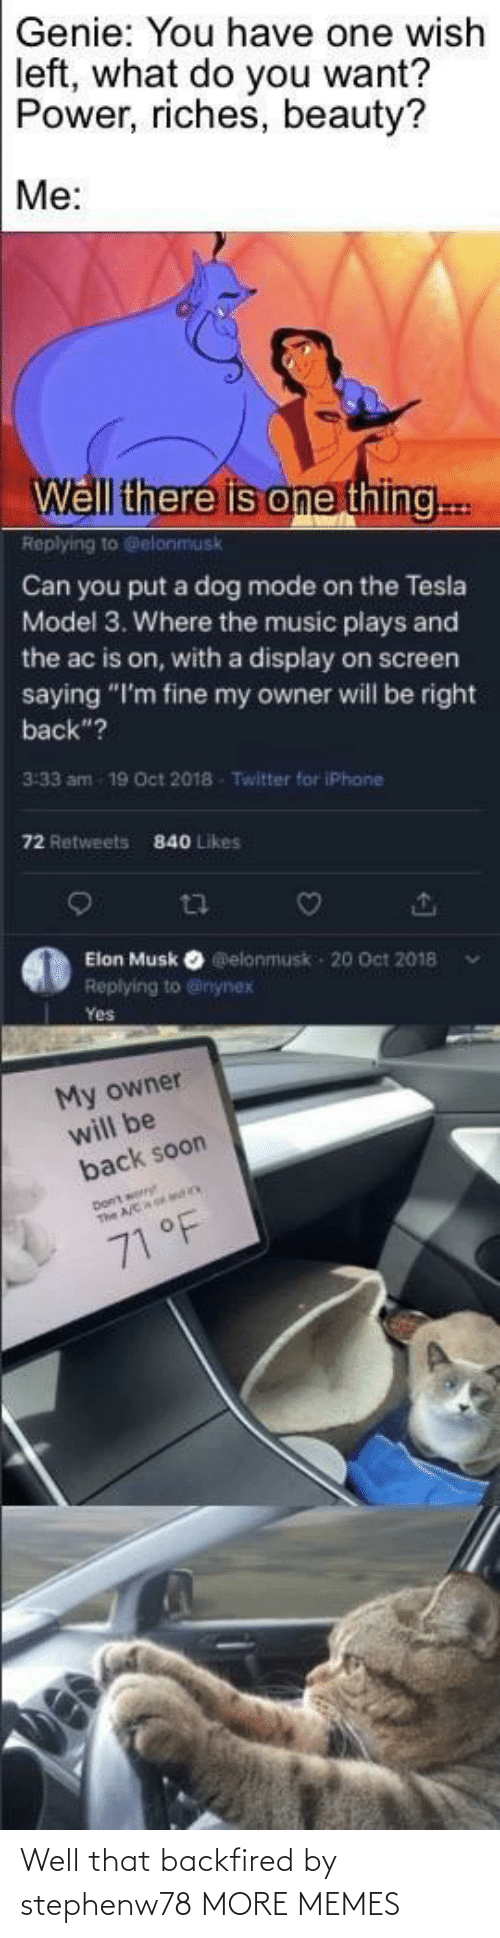 "want: Genie: You have one wish  left, what do you want?  Power, riches, beauty?  Me:  Well there is one thing..  Replying to Gelonmusk  Can you put a dog mode on the Tesla  Model 3. Where the music plays and  the ac is on, with a display on screen  saying ""I'm fine my owner will be right  back""?  3:33 am  19 Oct 2018  Twitter for iPhane  72 Retweets  840 Likes  Elon Musk O elonmusk - 20 Oct 2018  Replying to @inynex  Yes  My owner  will be  back soon  71 °F Well that backfired by stephenw78 MORE MEMES"